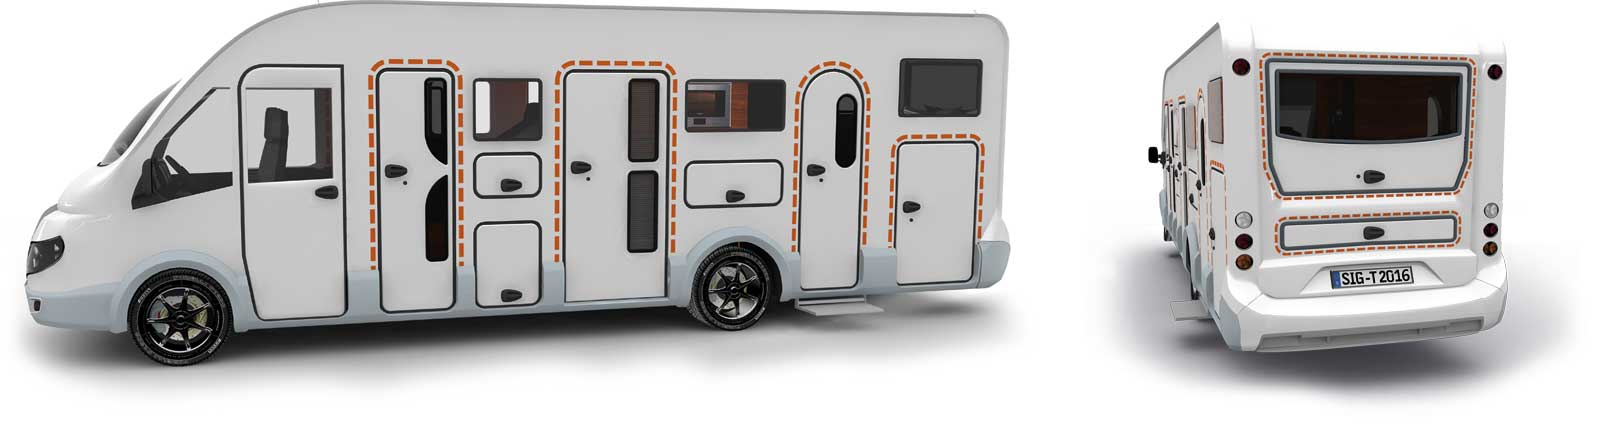 Satisfied tegos customers with Rapido caravans and RVs